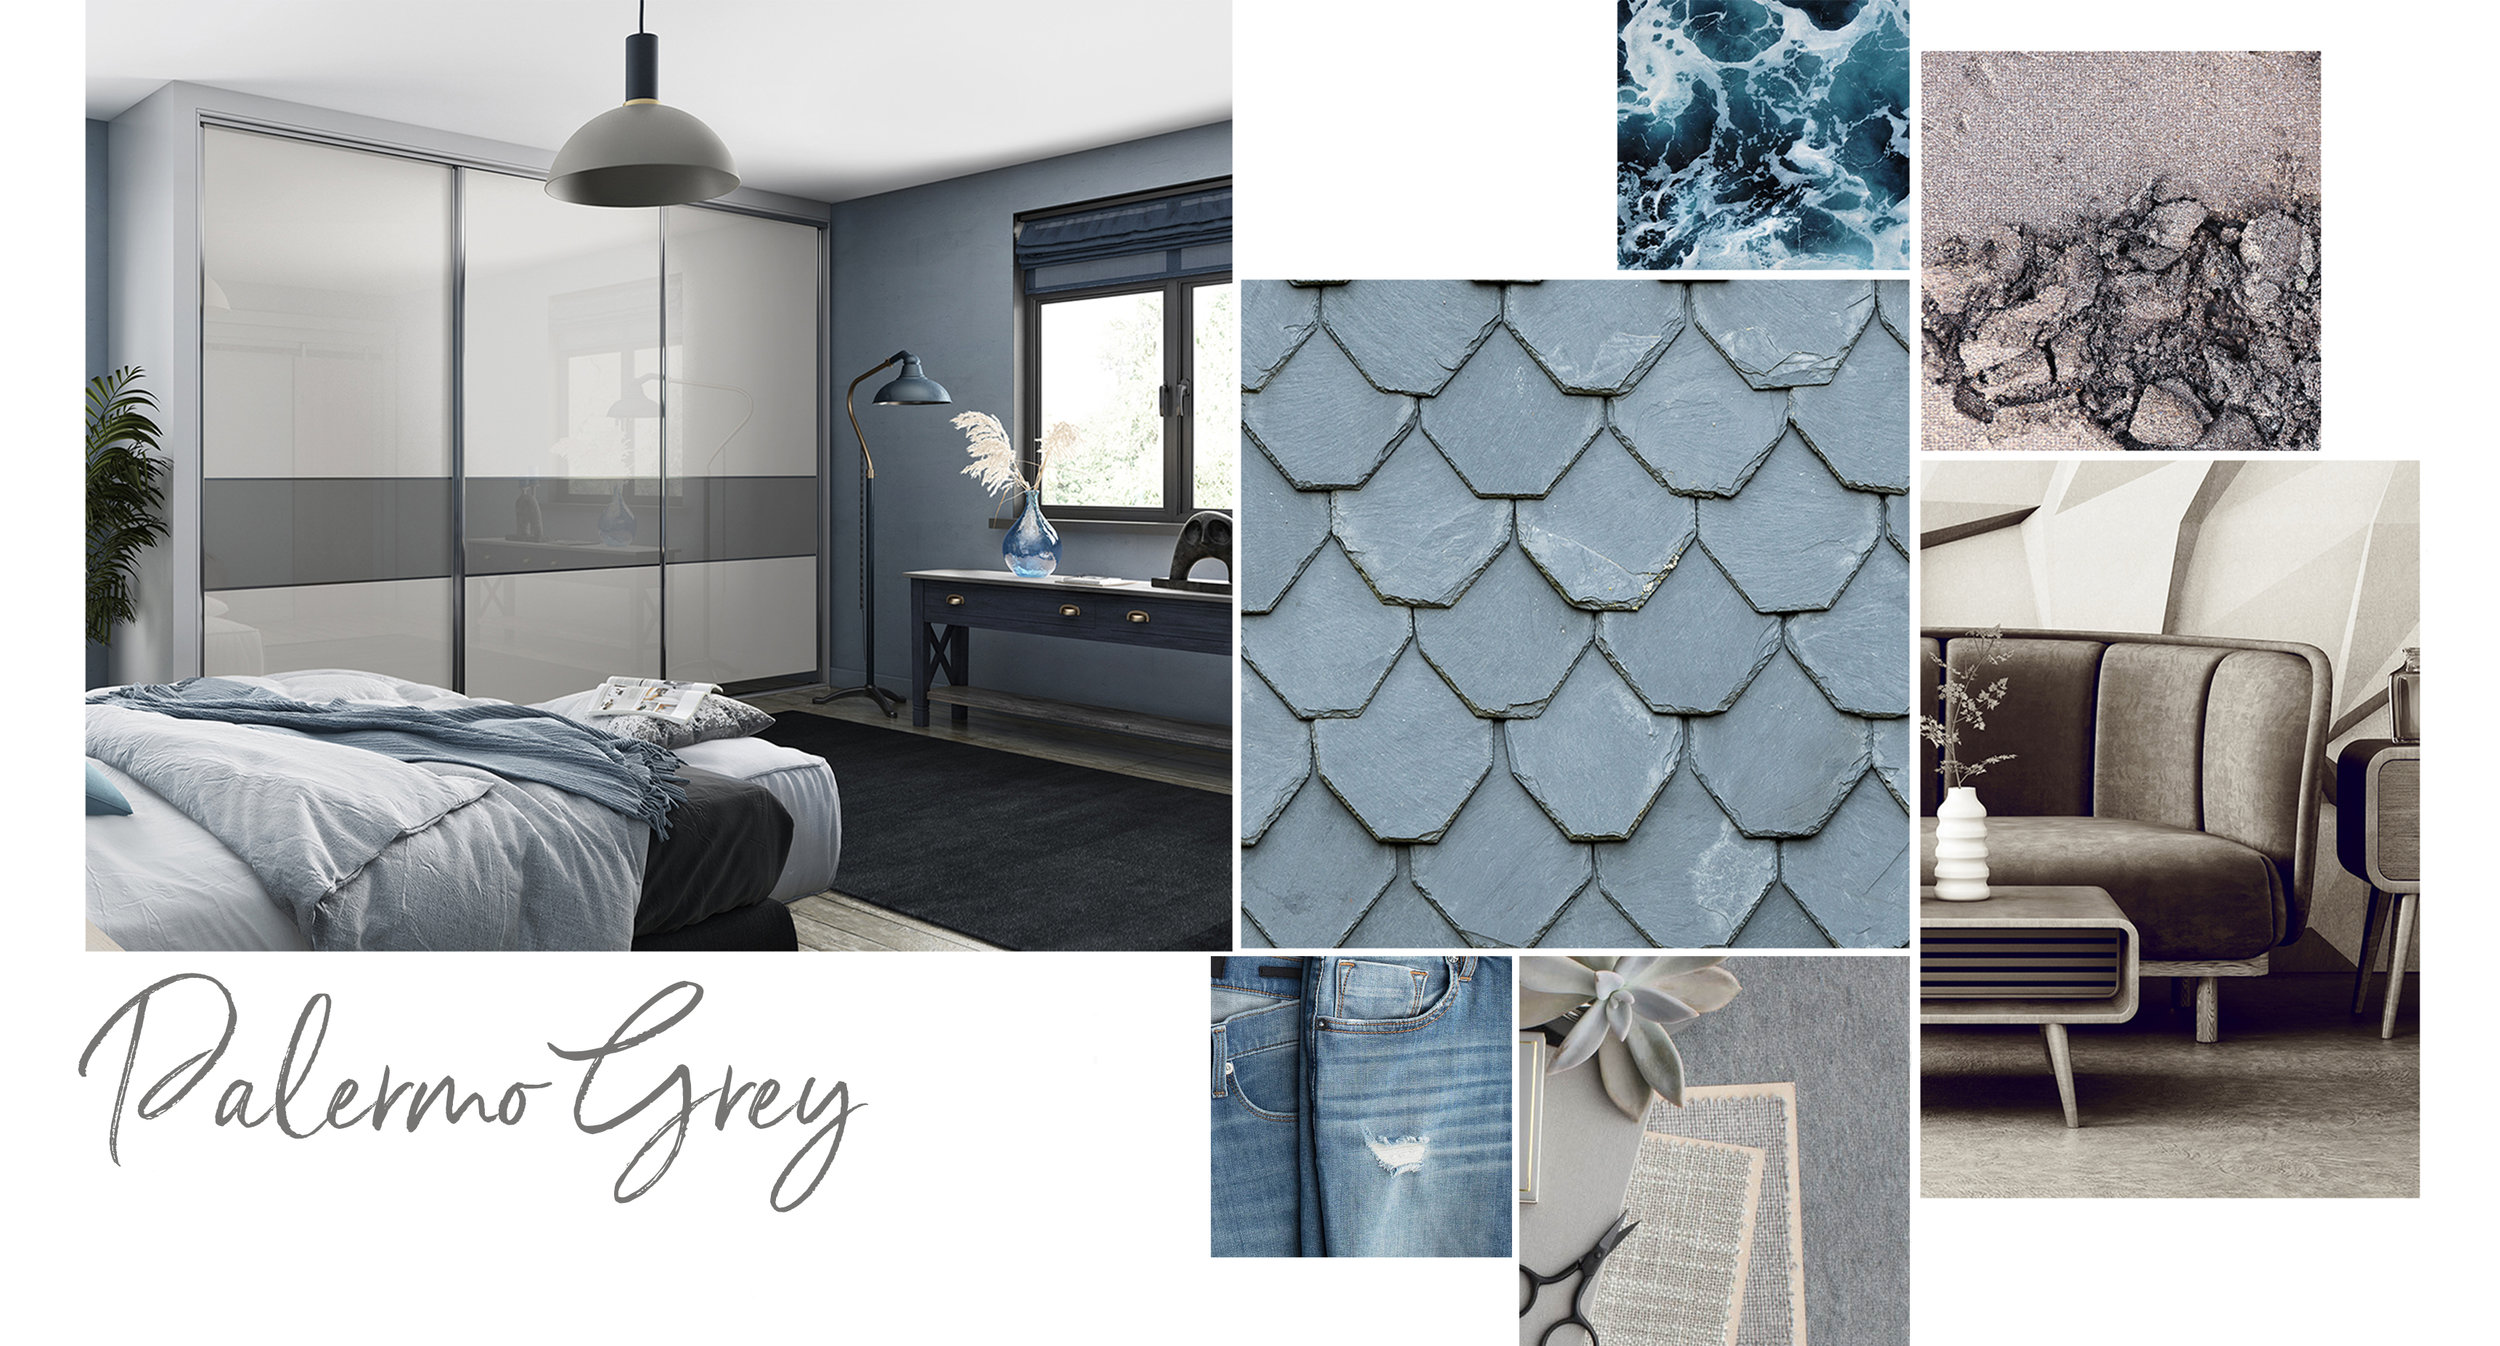 'Palermo Grey' features textured woodgrains, combined with a diverse selection of greys, including Dove, Slate and Graphite, to offer a sophisticated and stylish colour palette, which is both balanced and relaxing.